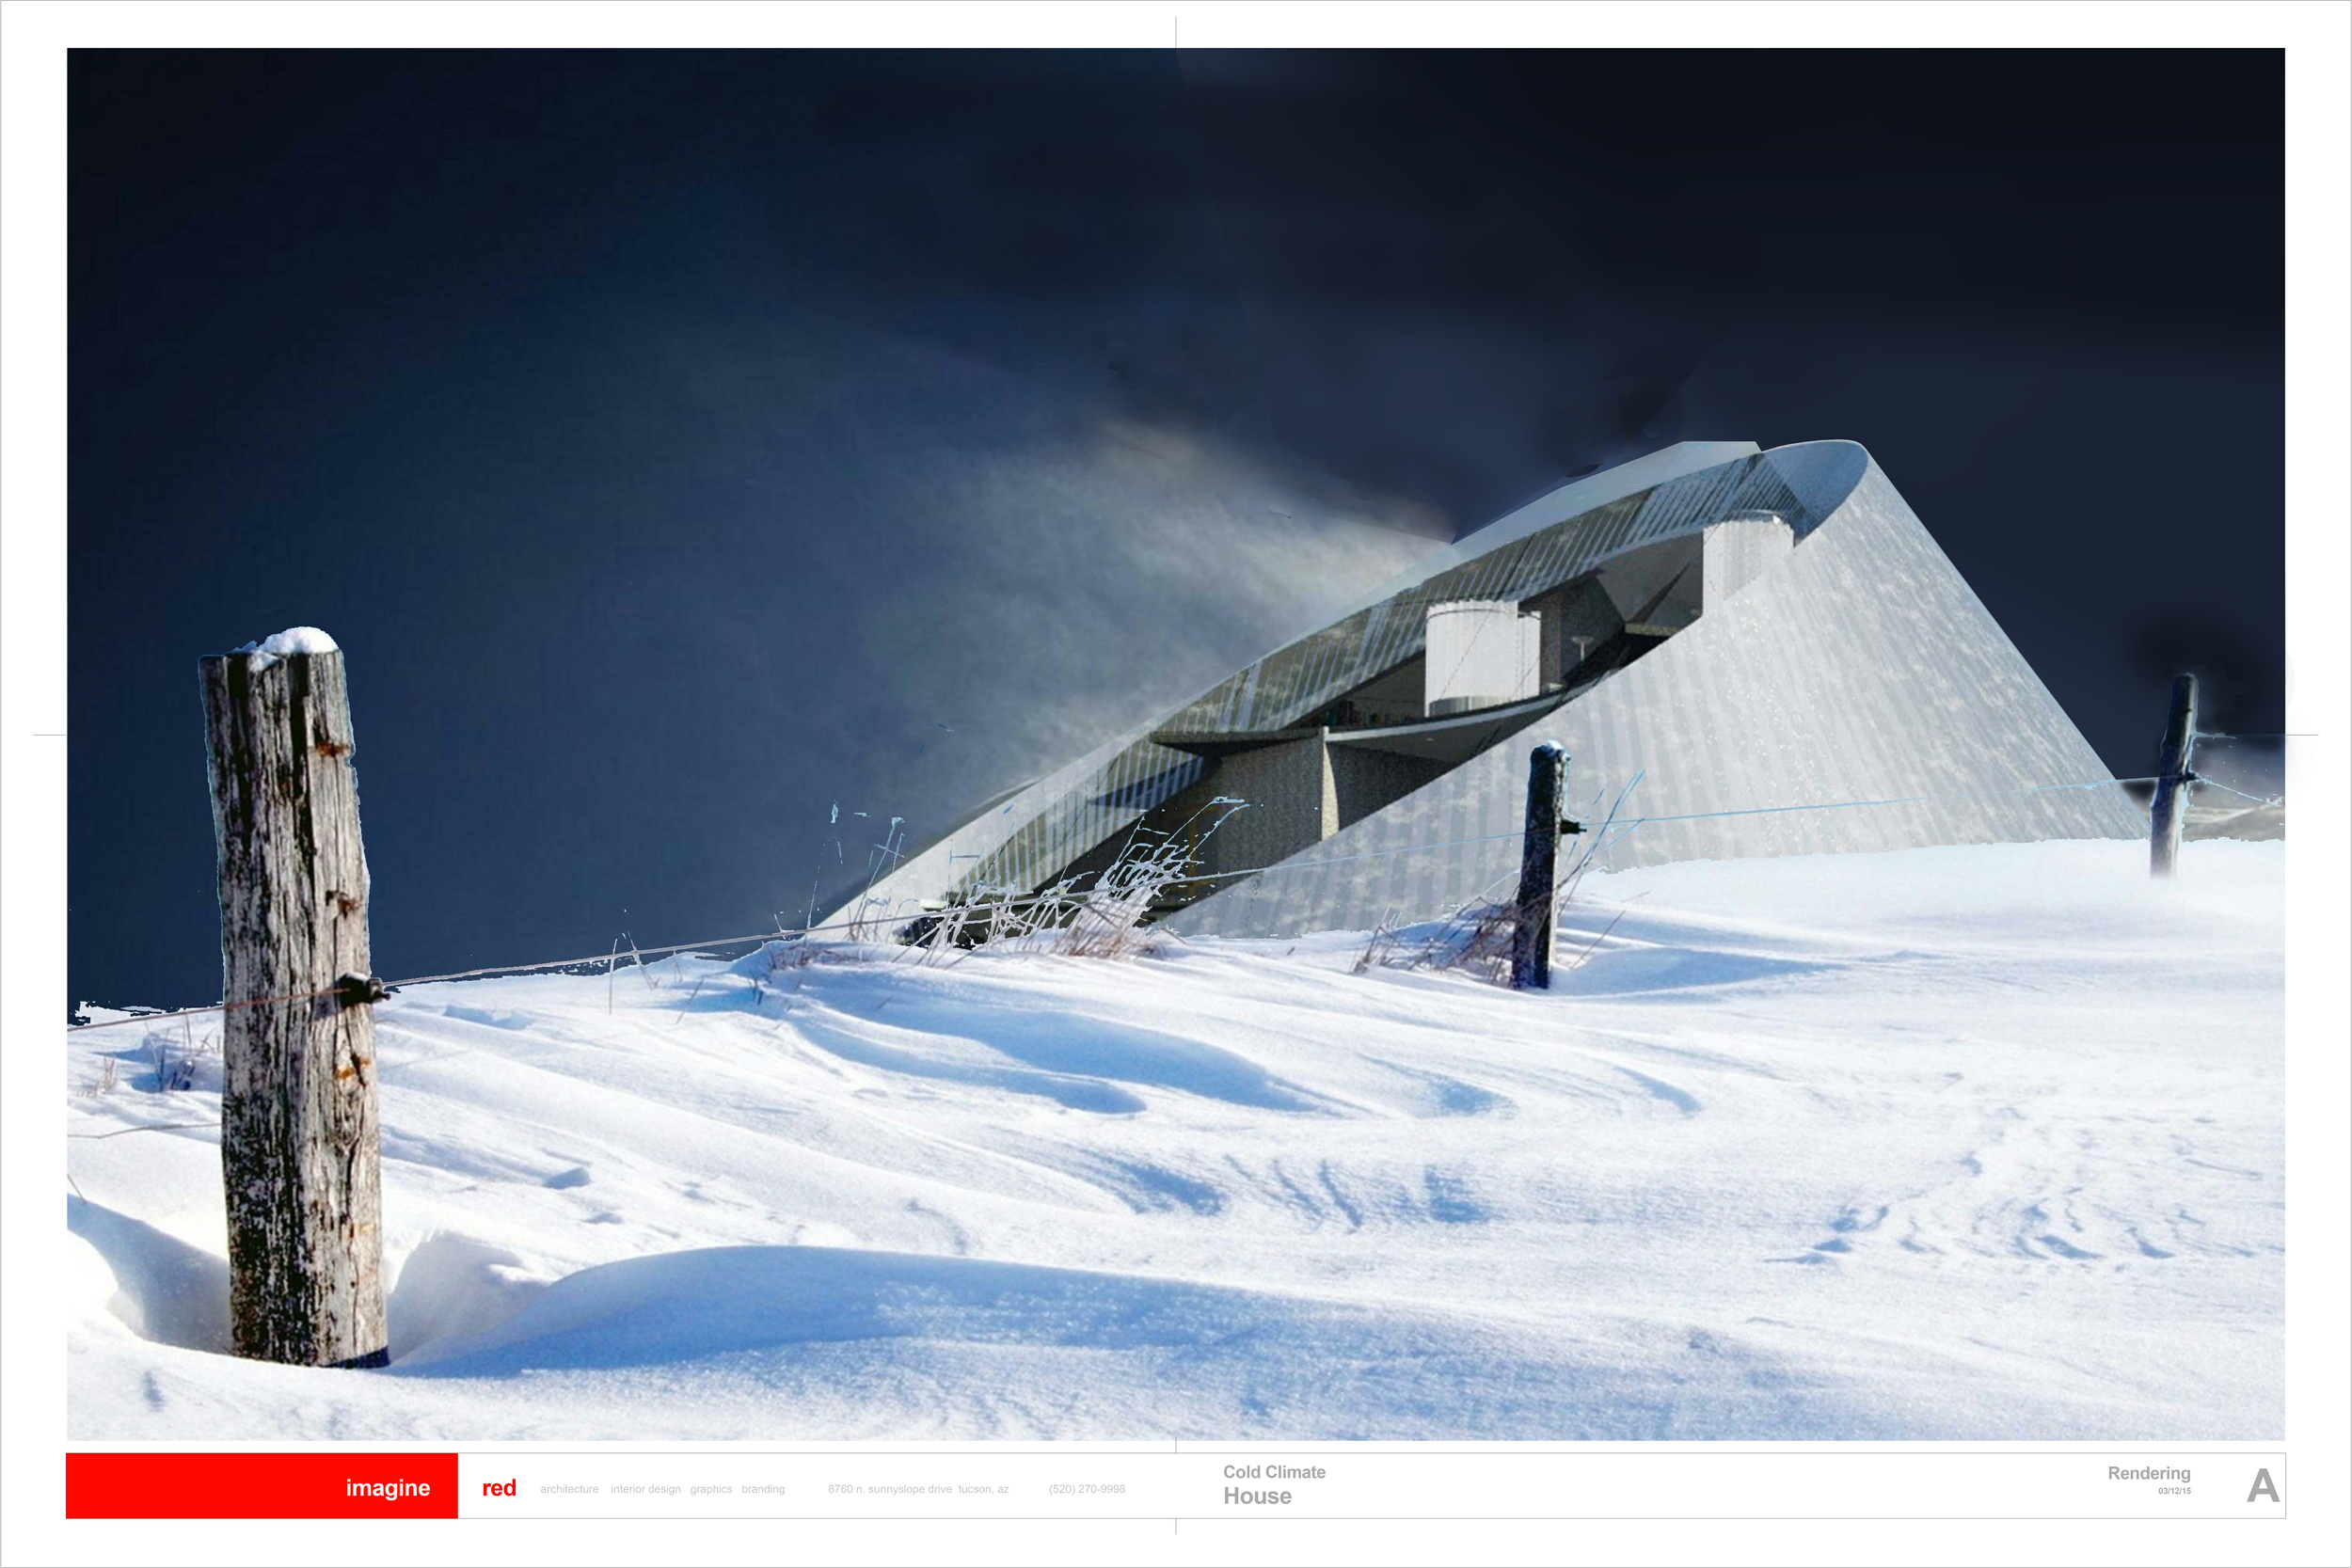 Cold Climate House - Sheet - A - Rendering no sun.jpg